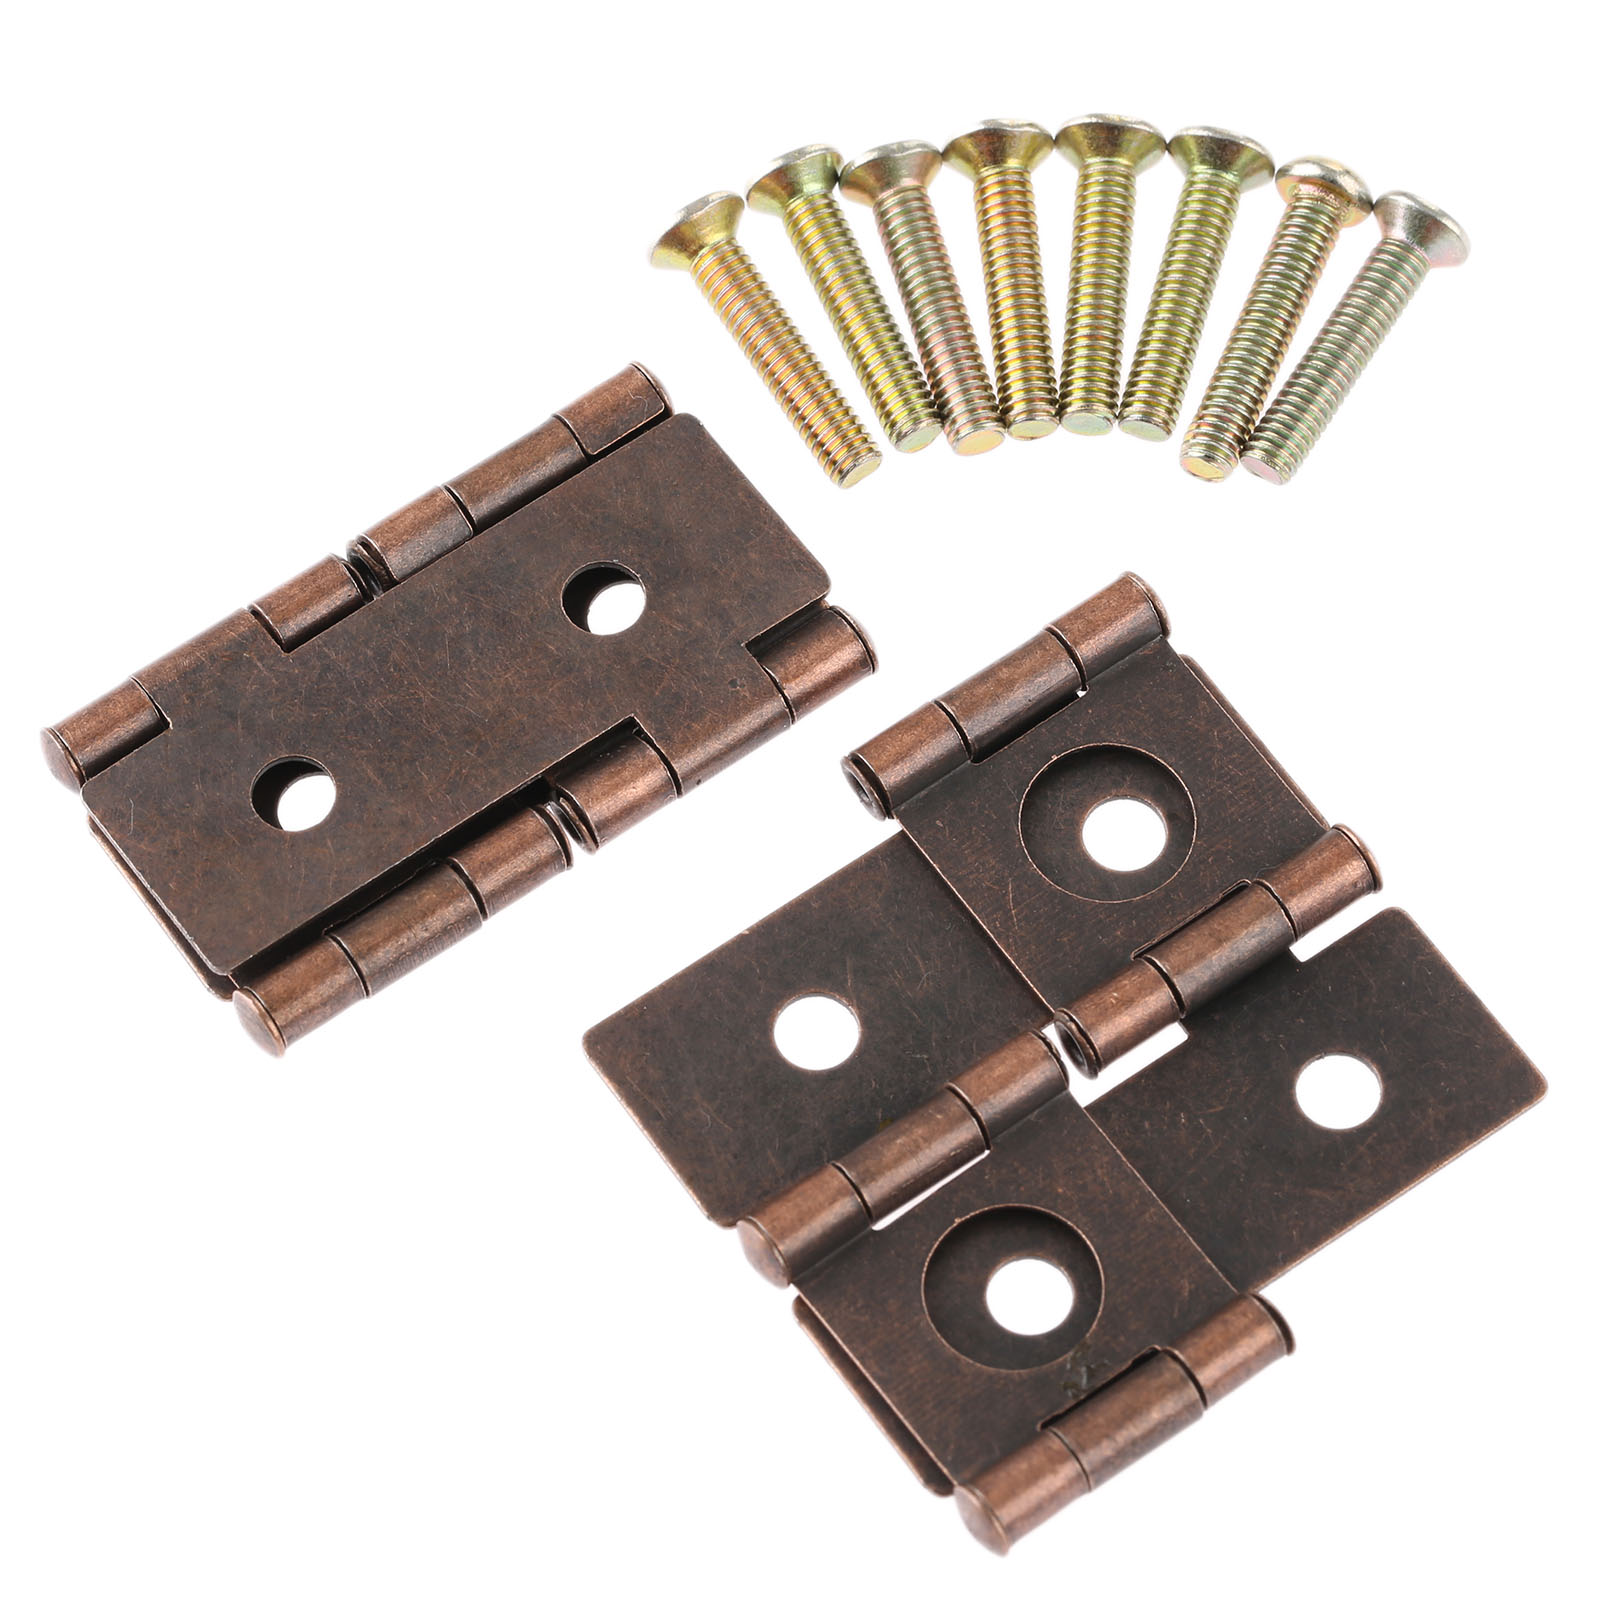 180 Degree Cabinet Hinges Reviews